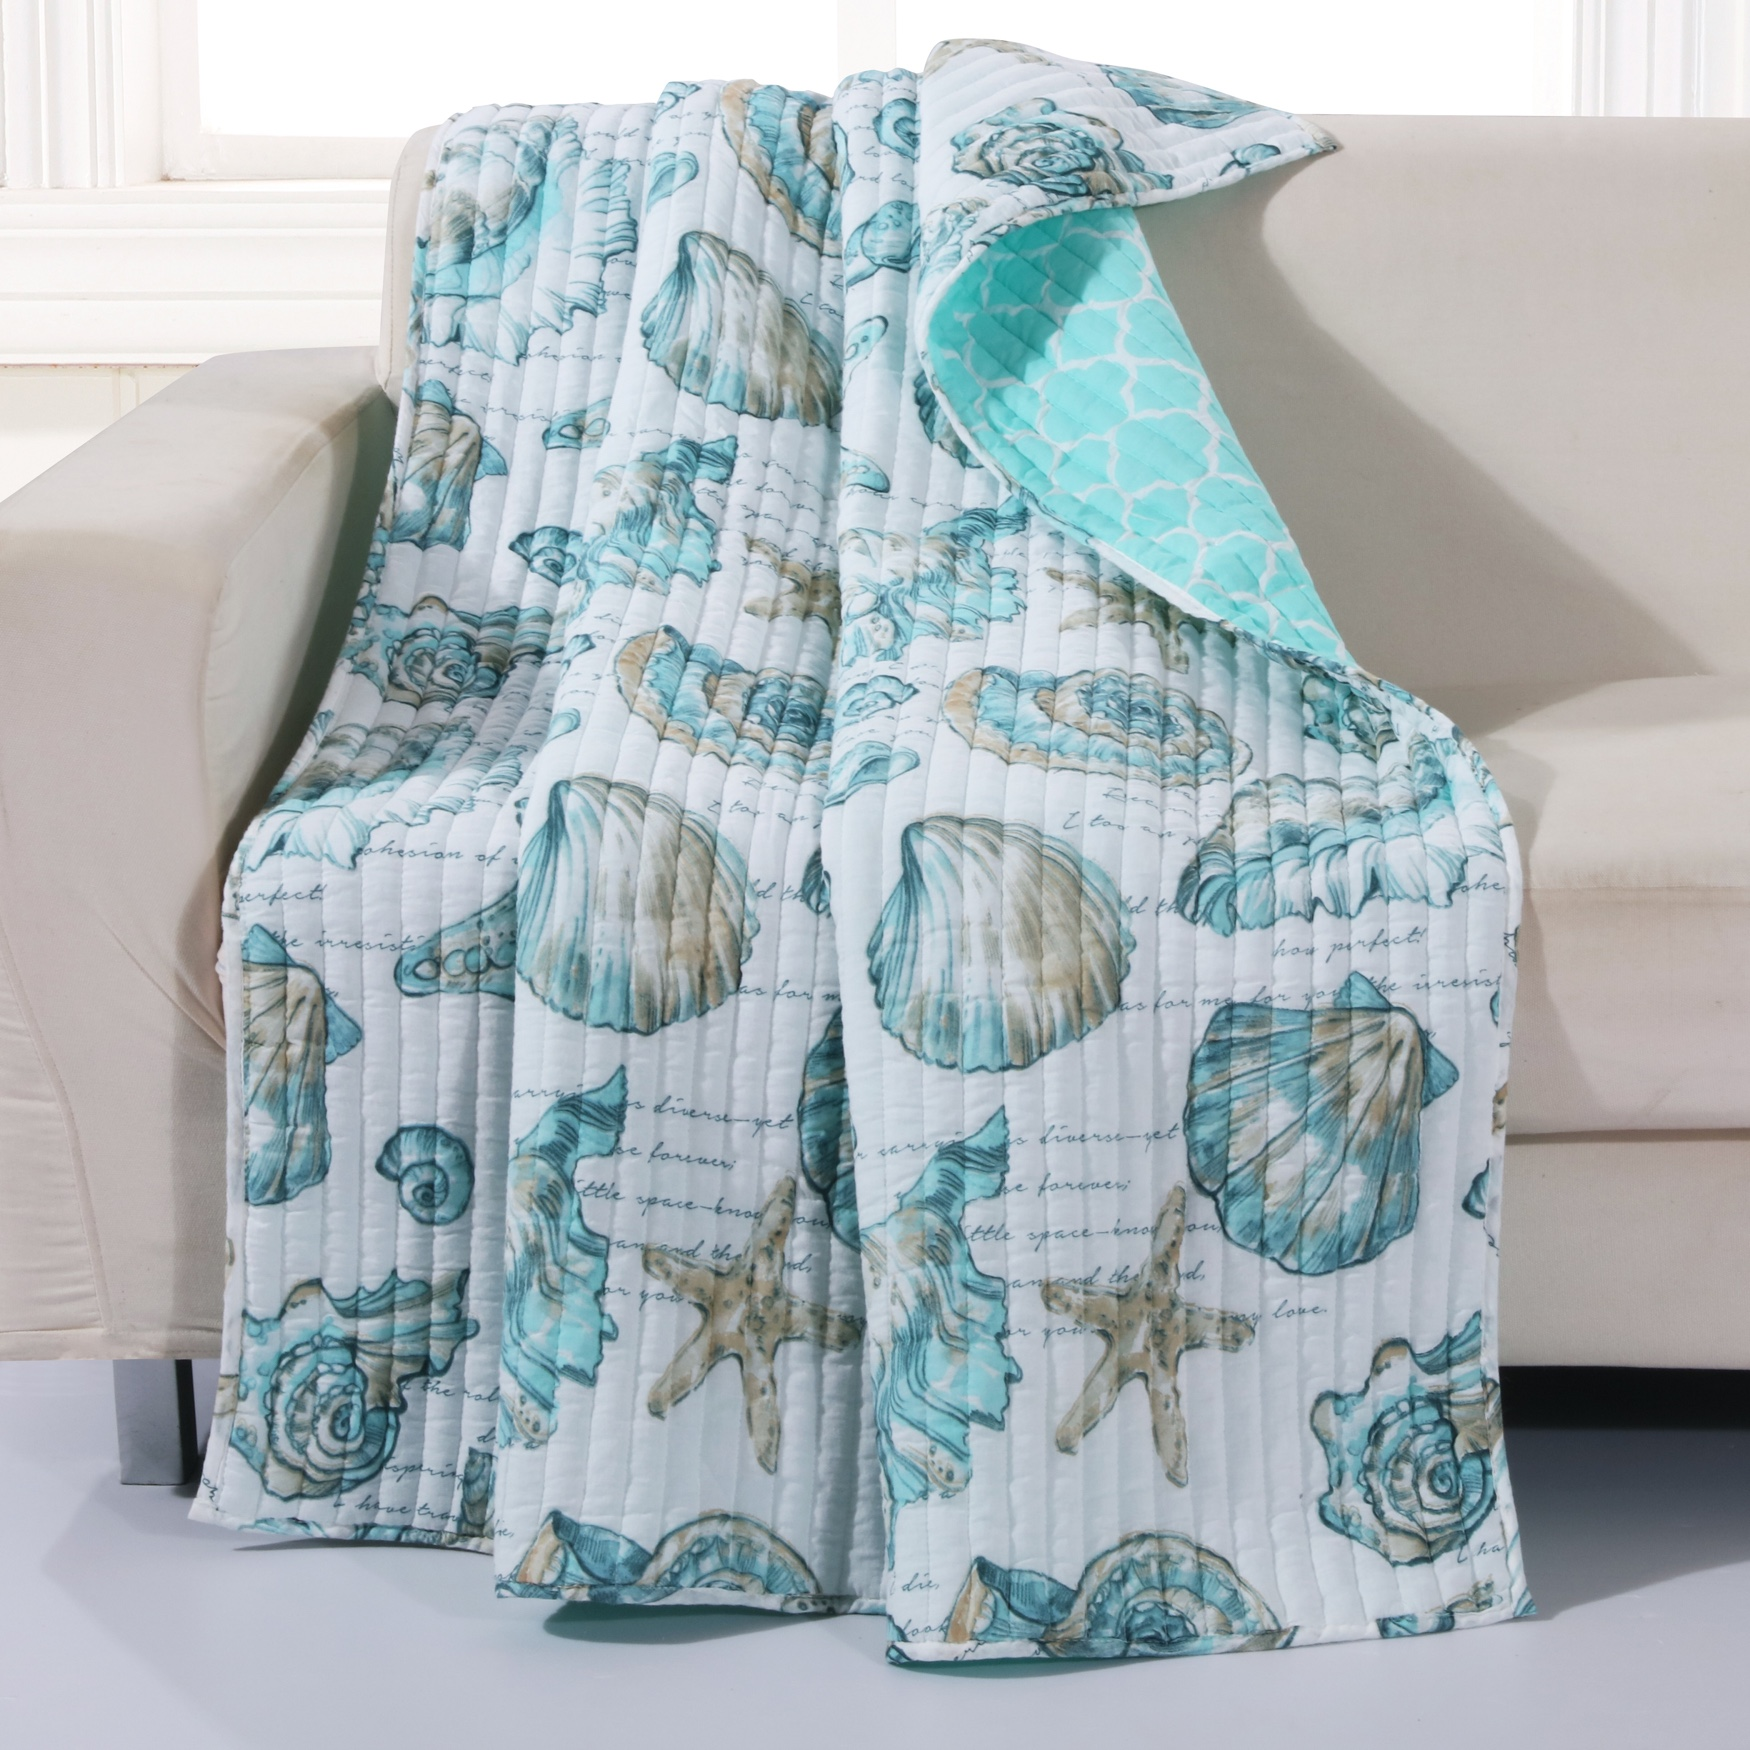 Barefoot Bungalow Cruz Quilted Throw Blanket,